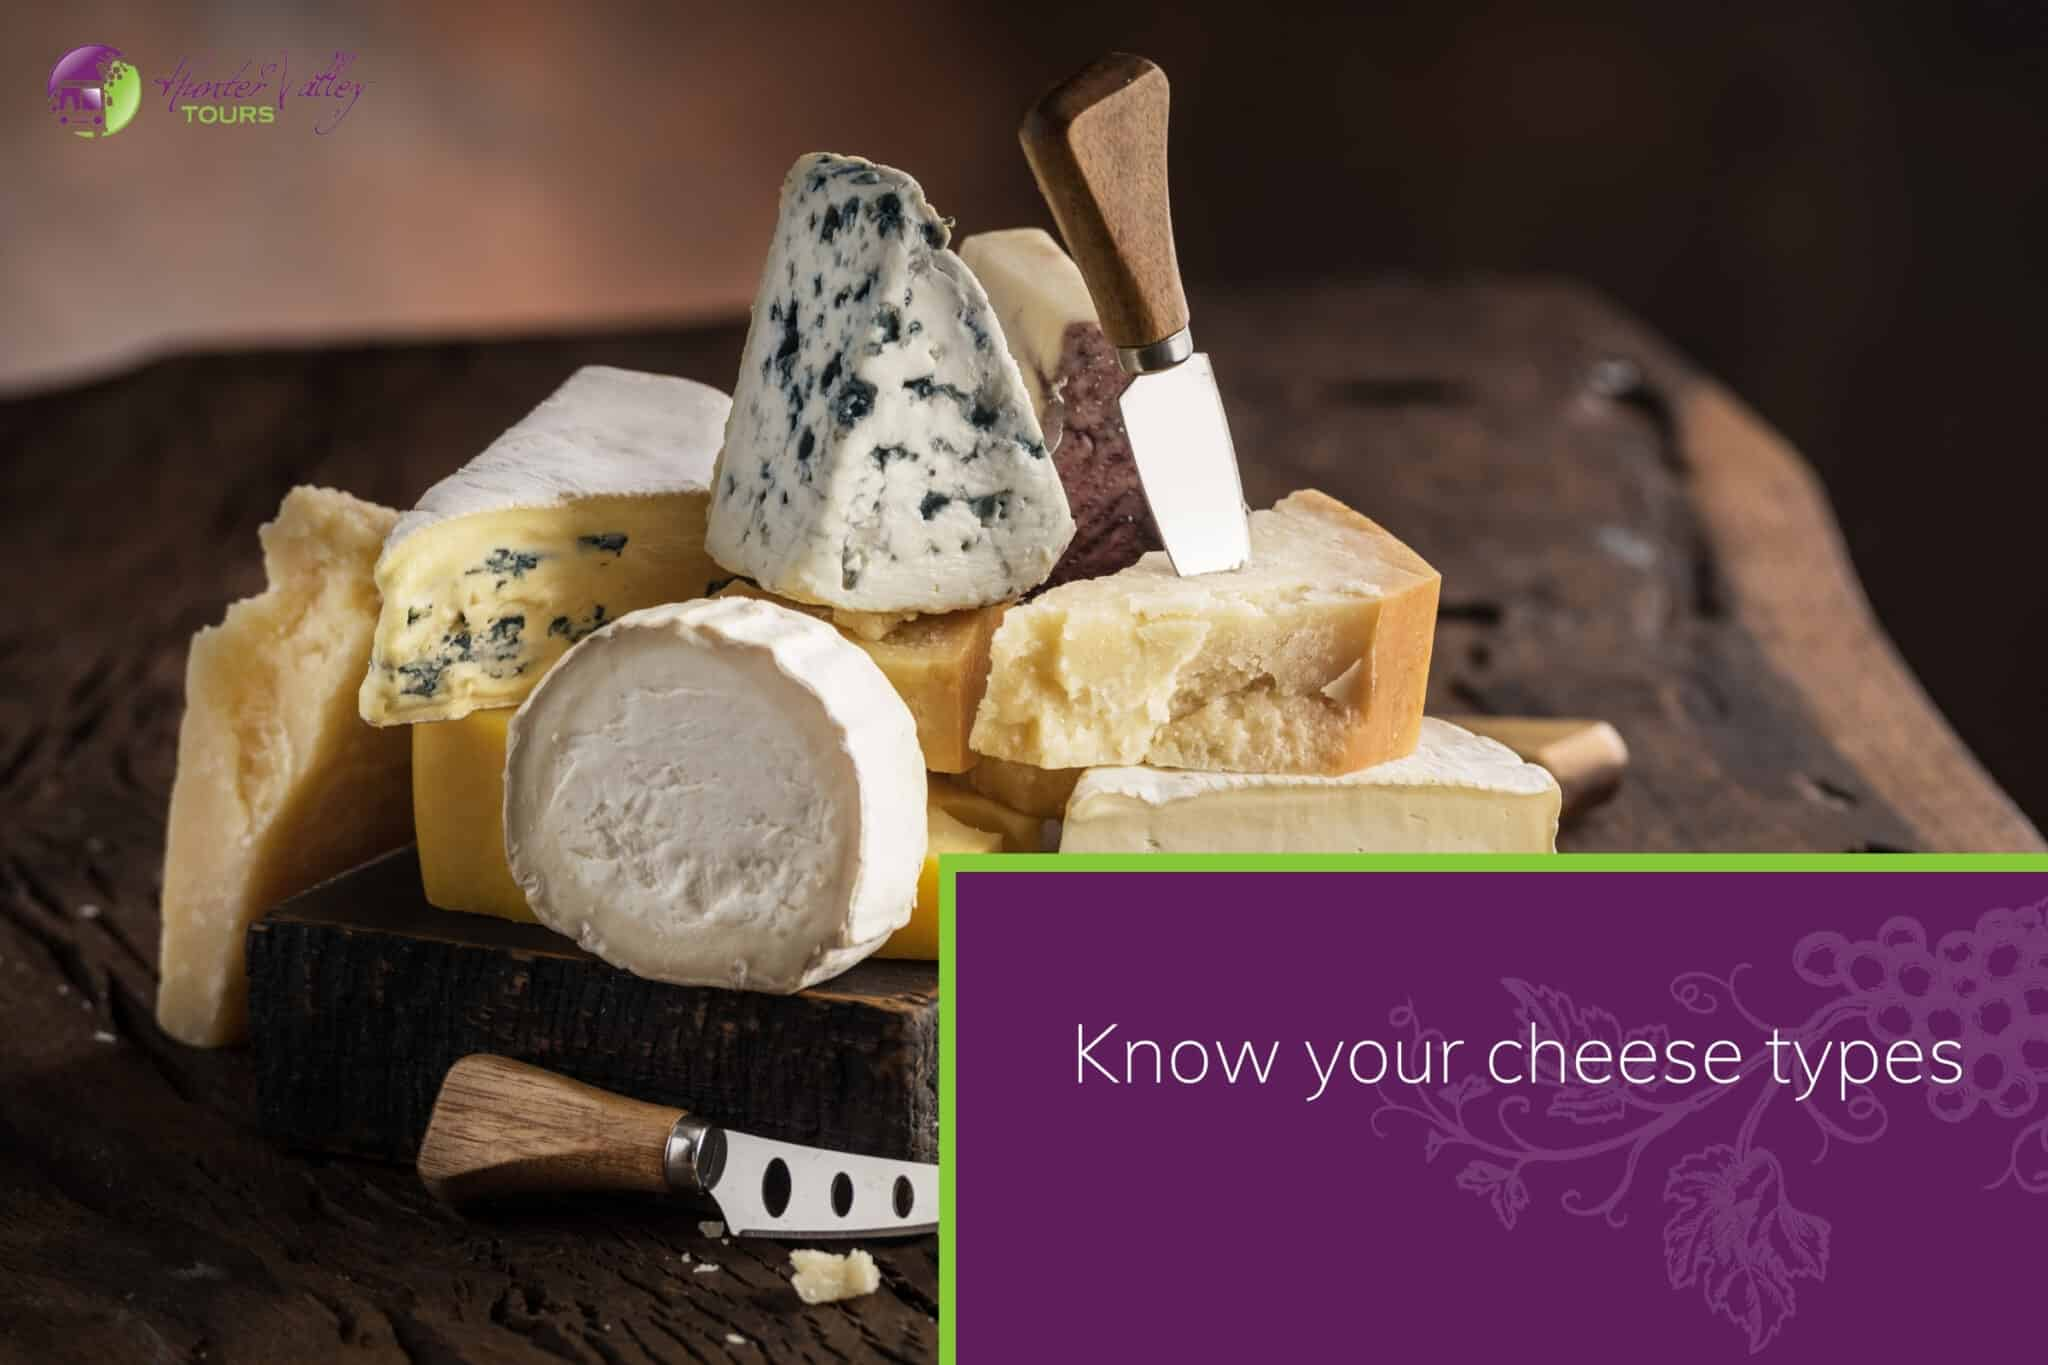 Know your cheese types